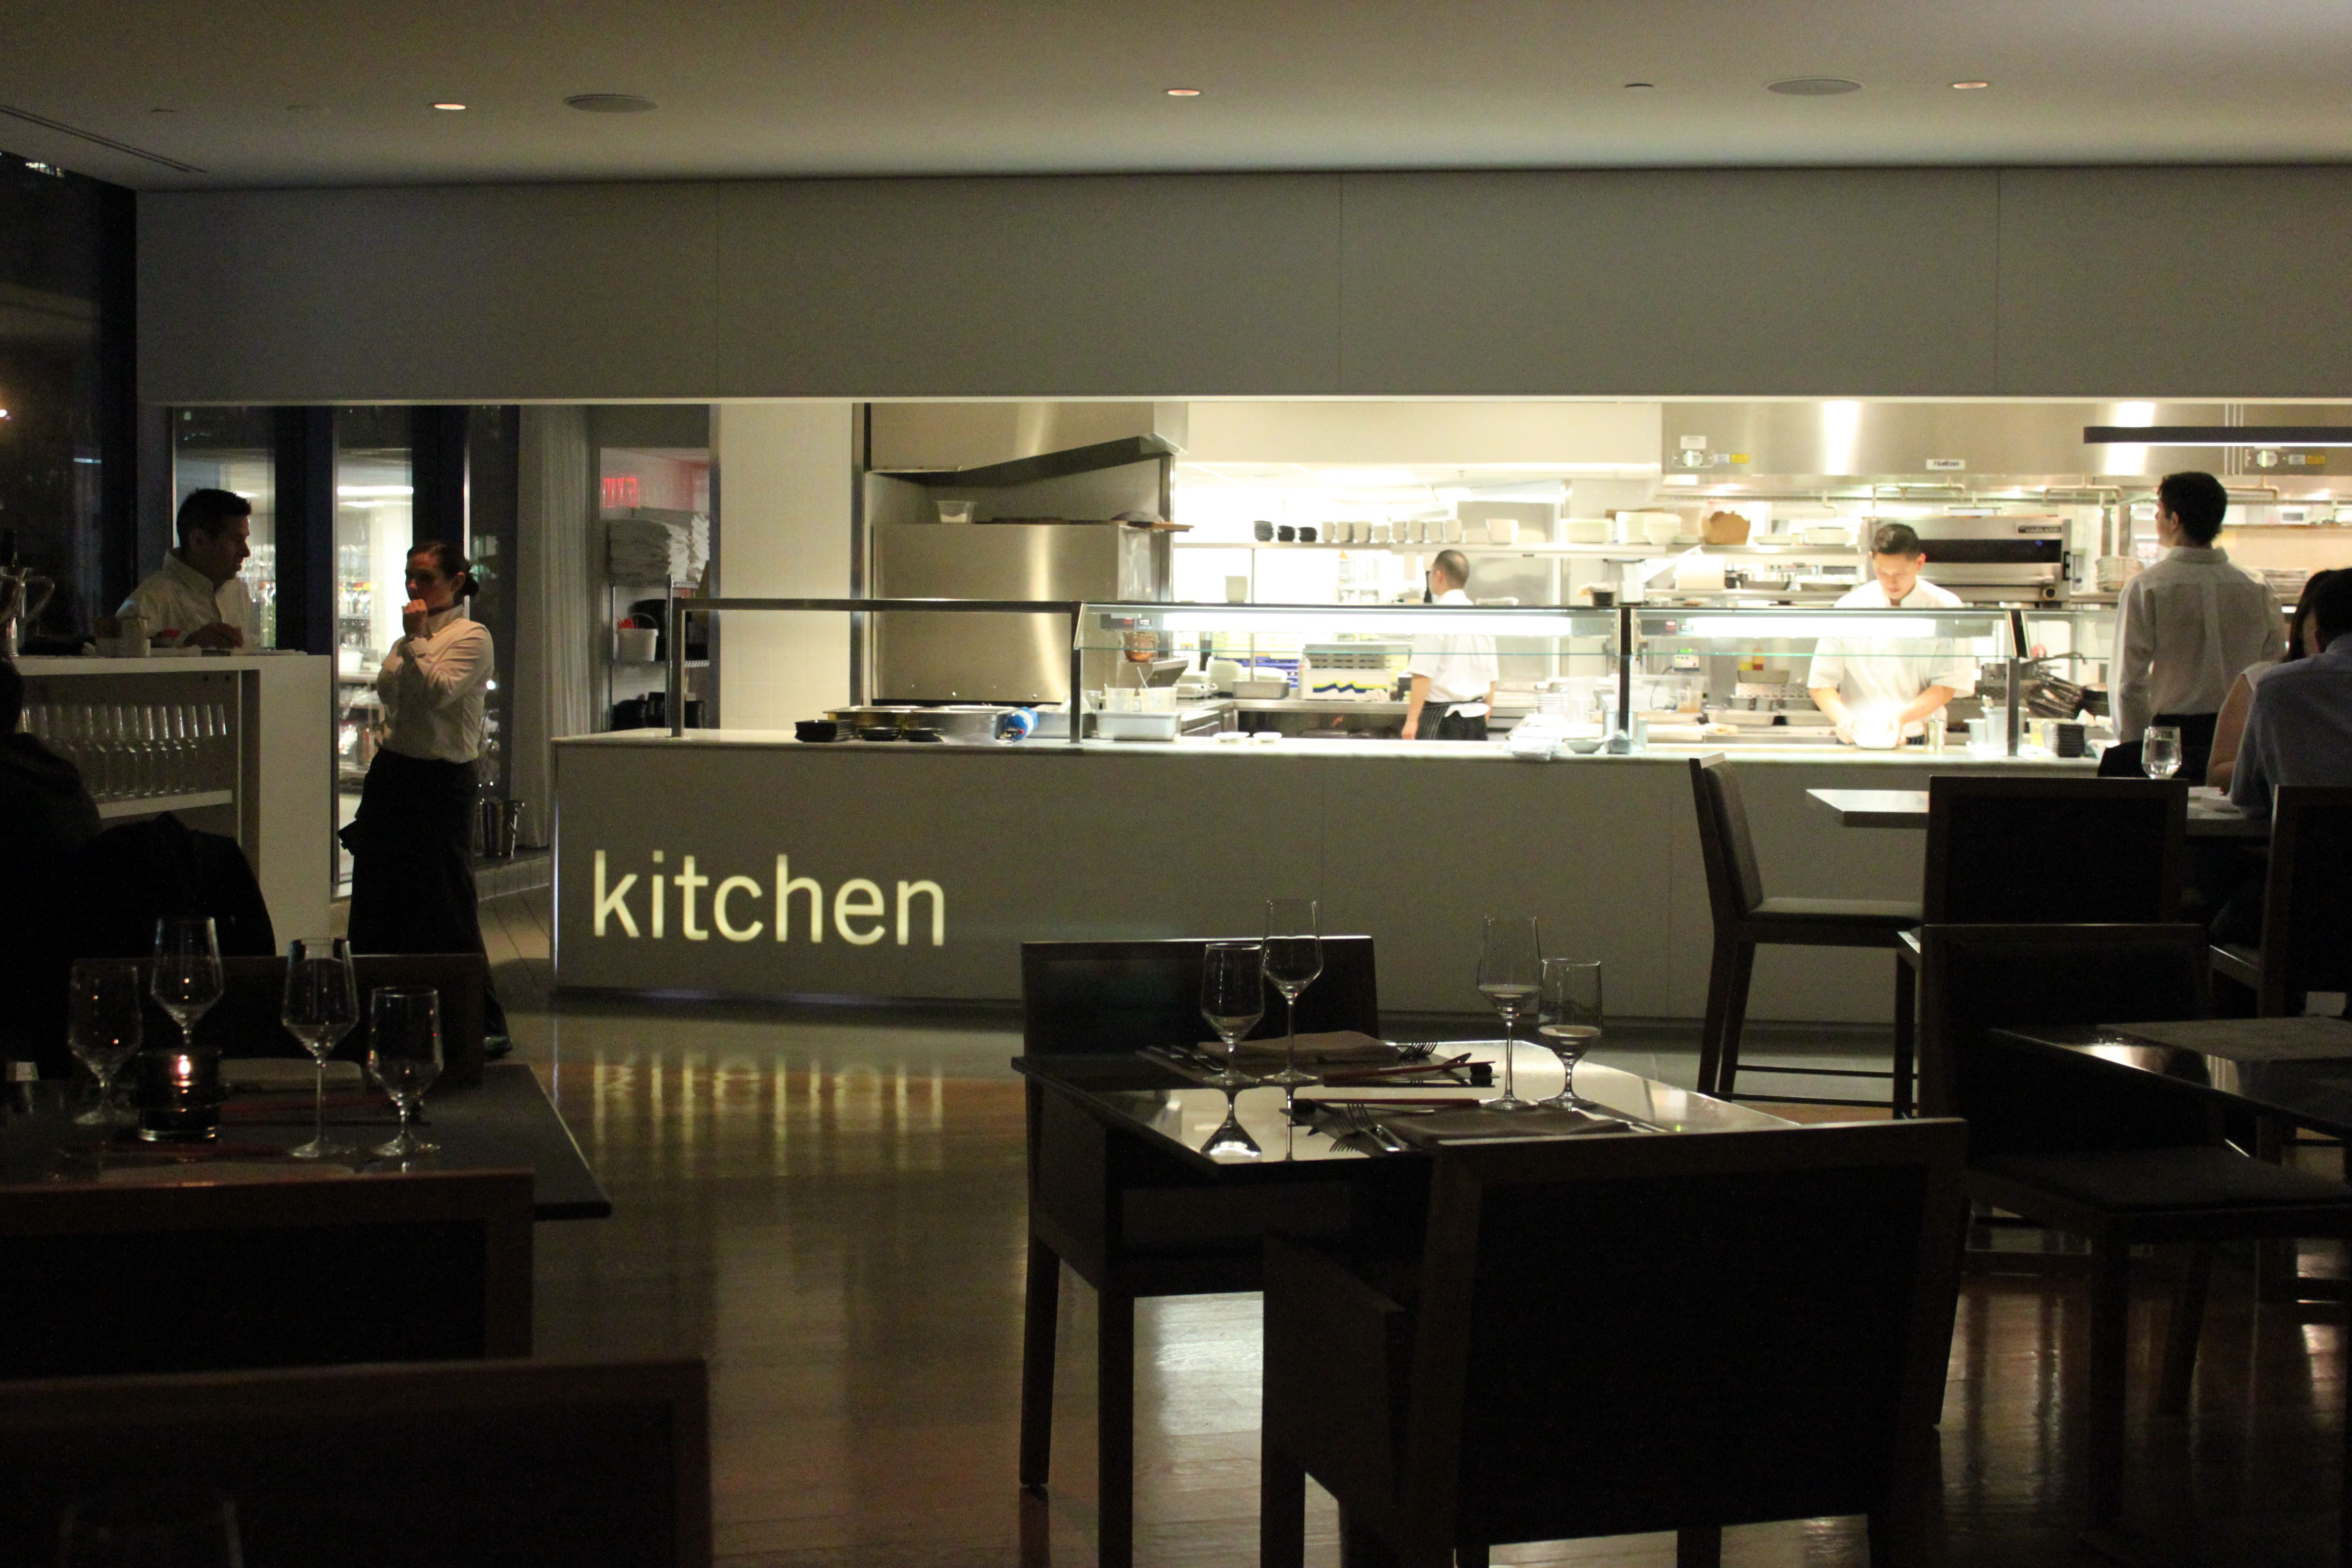 Euorpean restaurant design concept kitchen